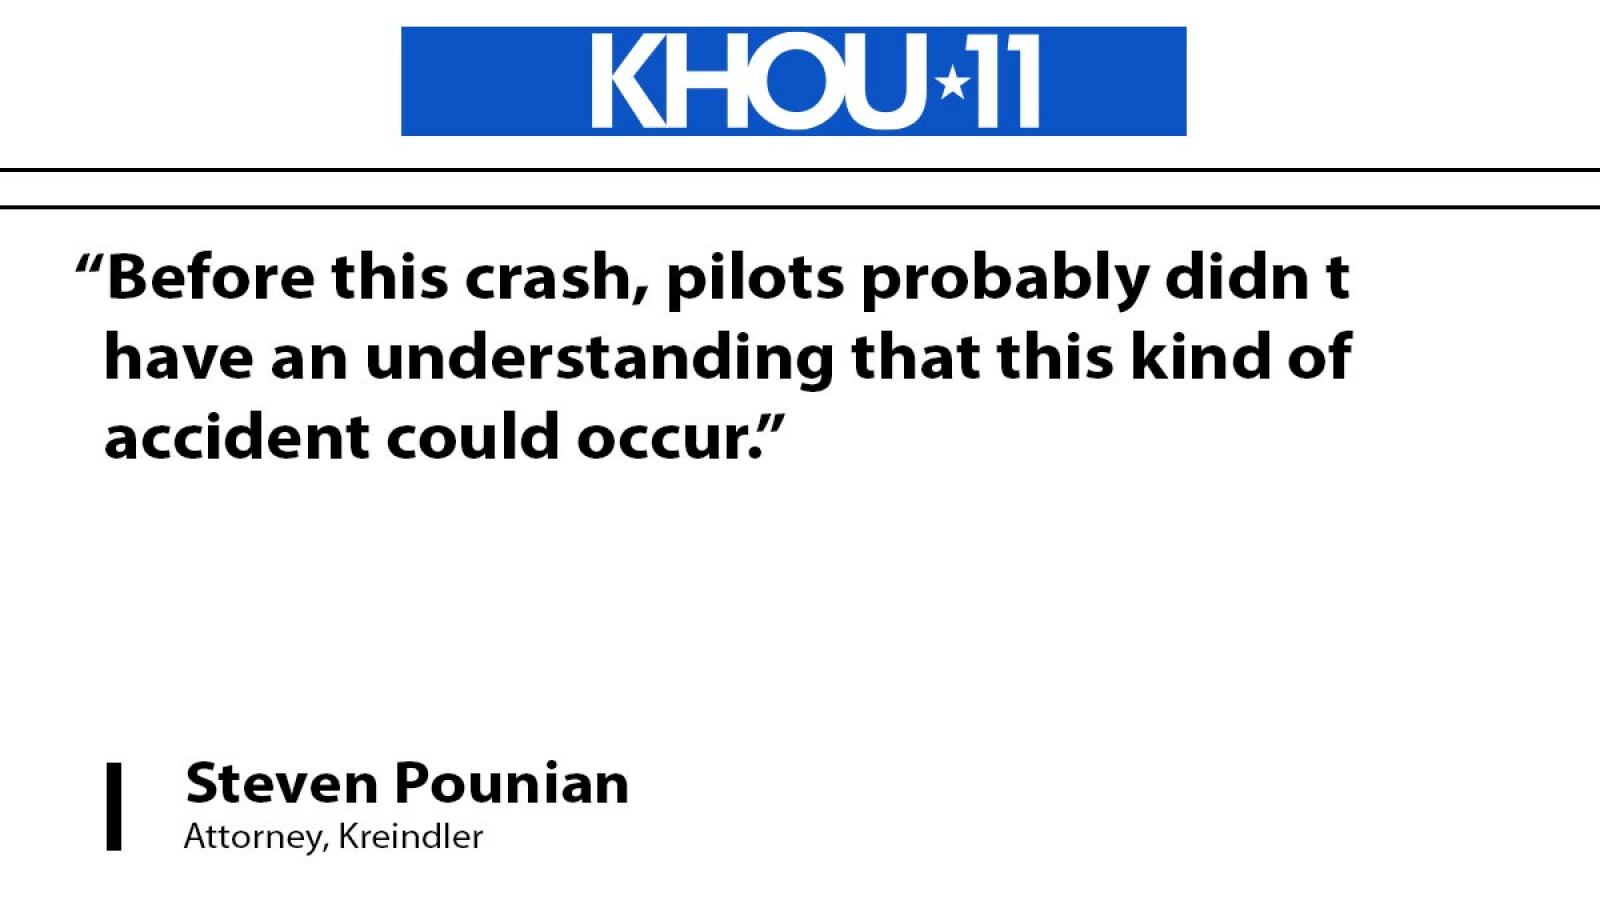 On anniversary of Flight 587 accident, Kreindler attorney Steve Pounian looks at what we've learned since then